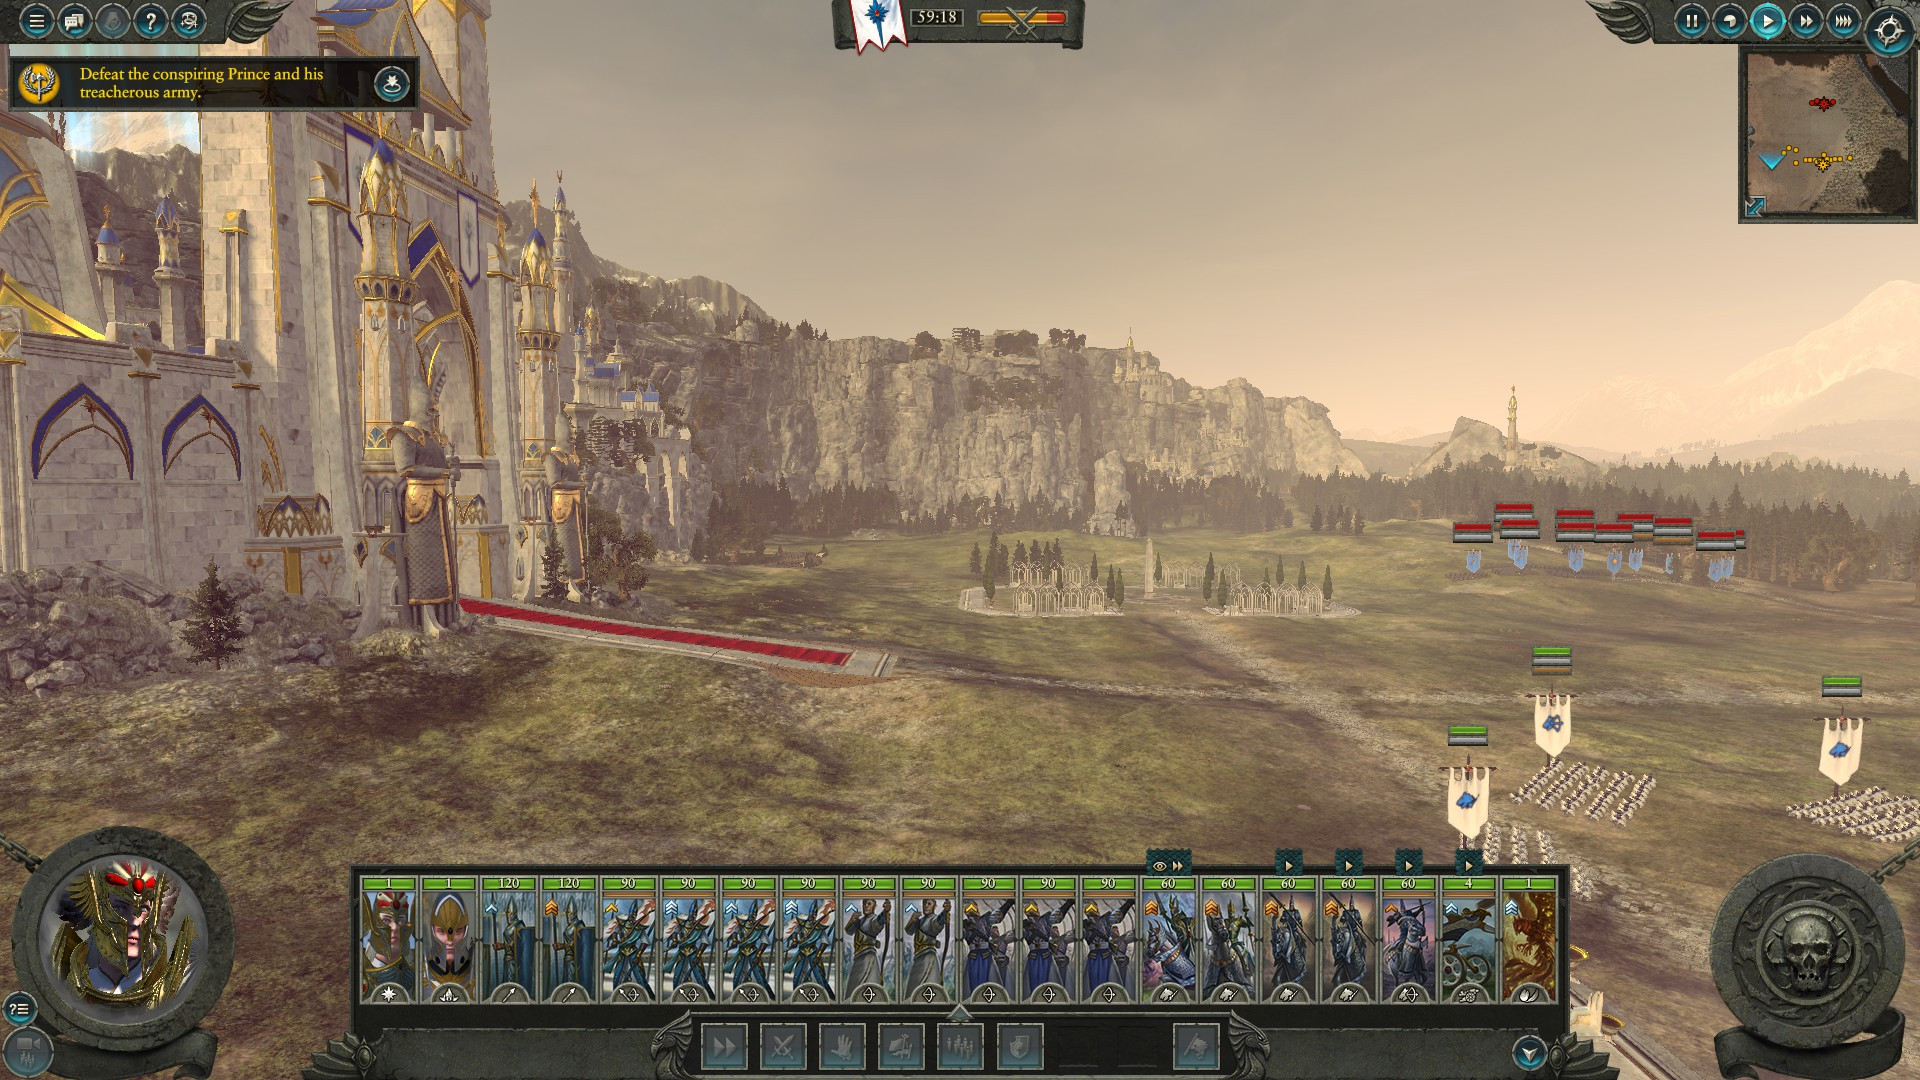 The chaos and action of Total War: Warhammer II makes for a